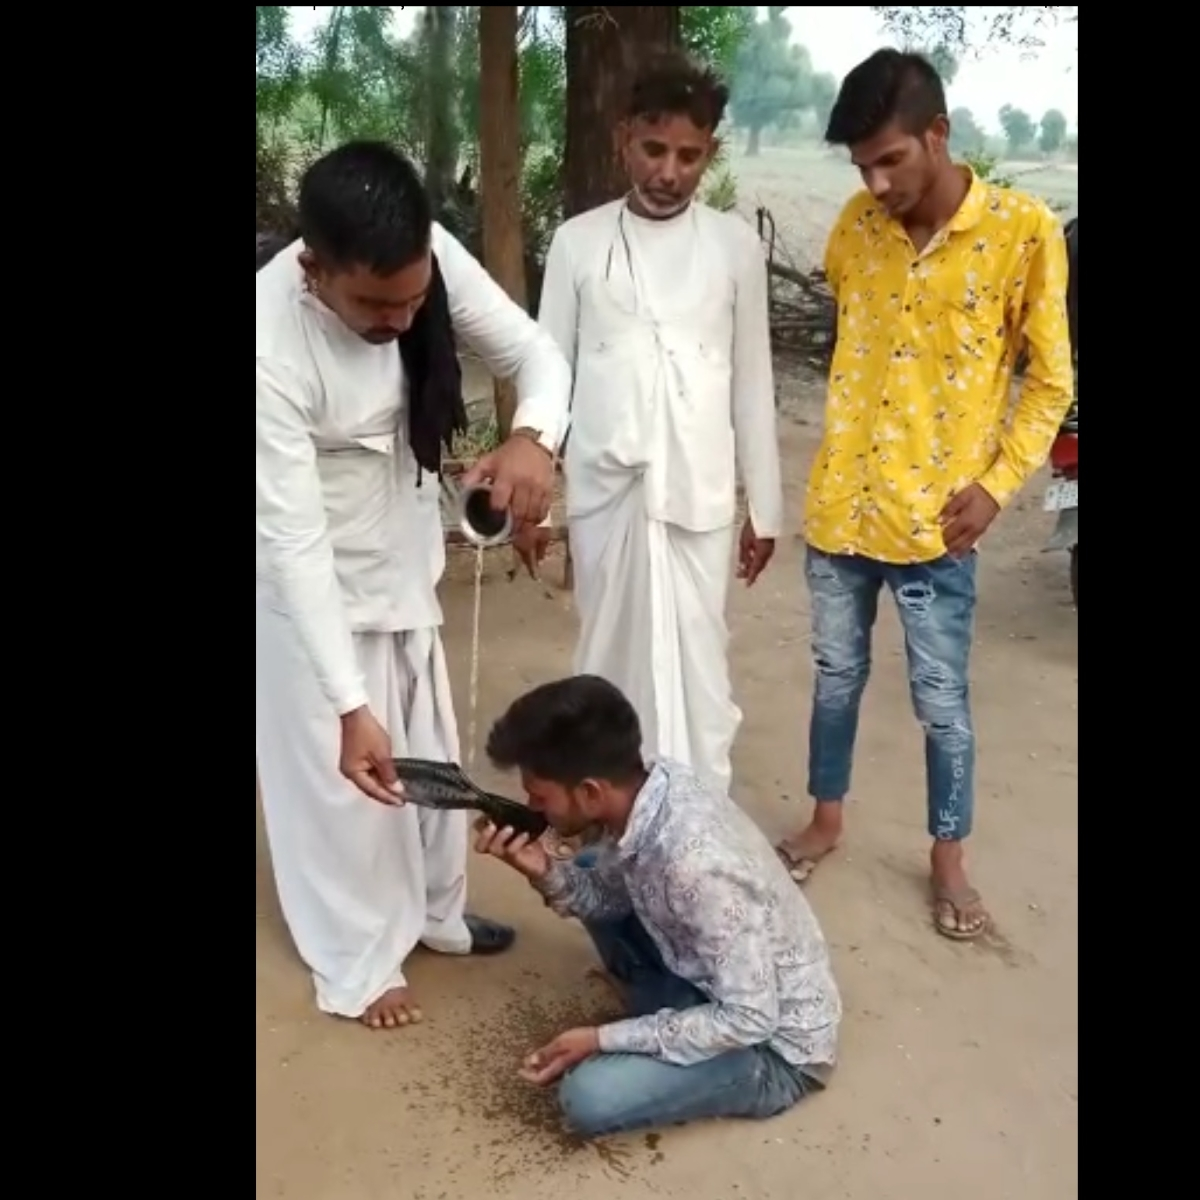 Watch: Panchayat forces boy to drink urine for falling in love in Rajasthan, video goes viral